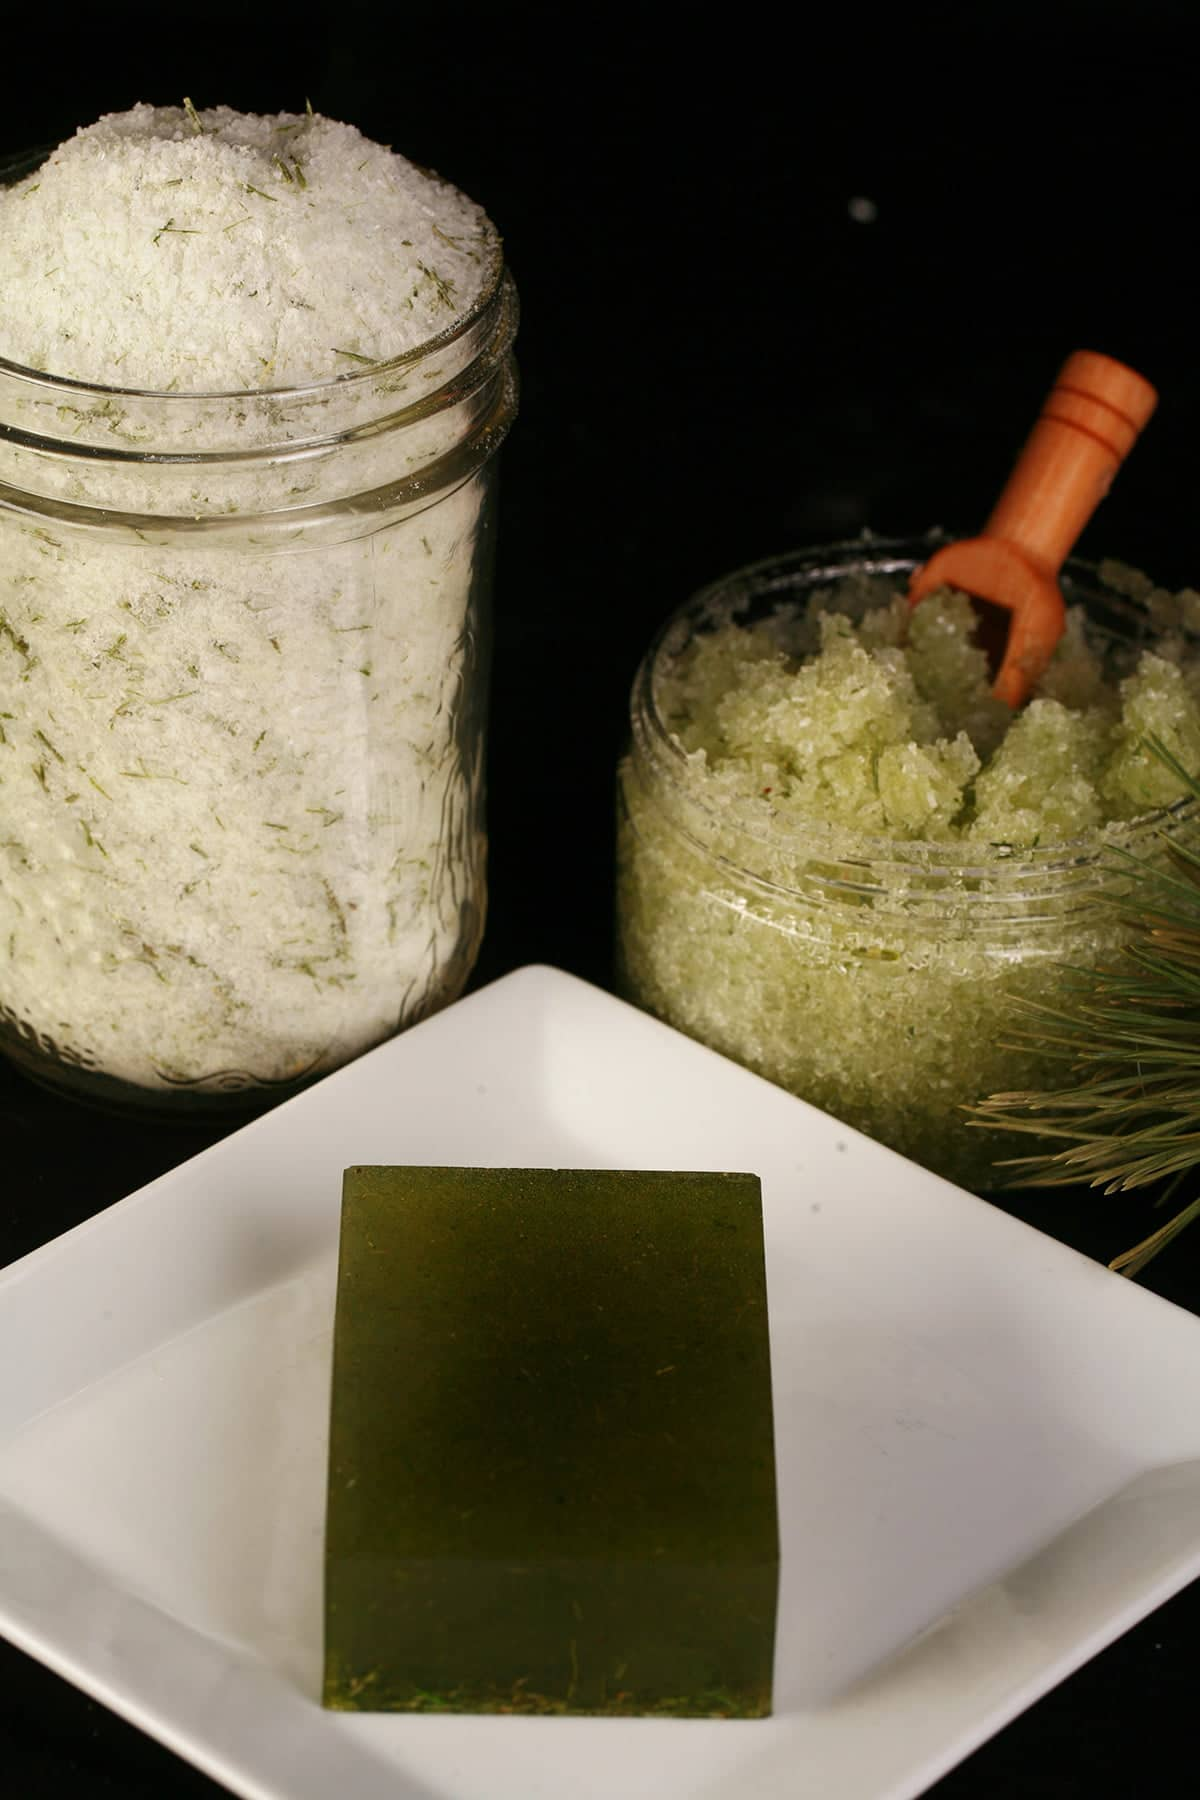 A trio of cedar bath products - a mason jar with bath salts, a smaller jar with green salt scrub, and a green bar of soap. All have flecks of preen pine needles in them.